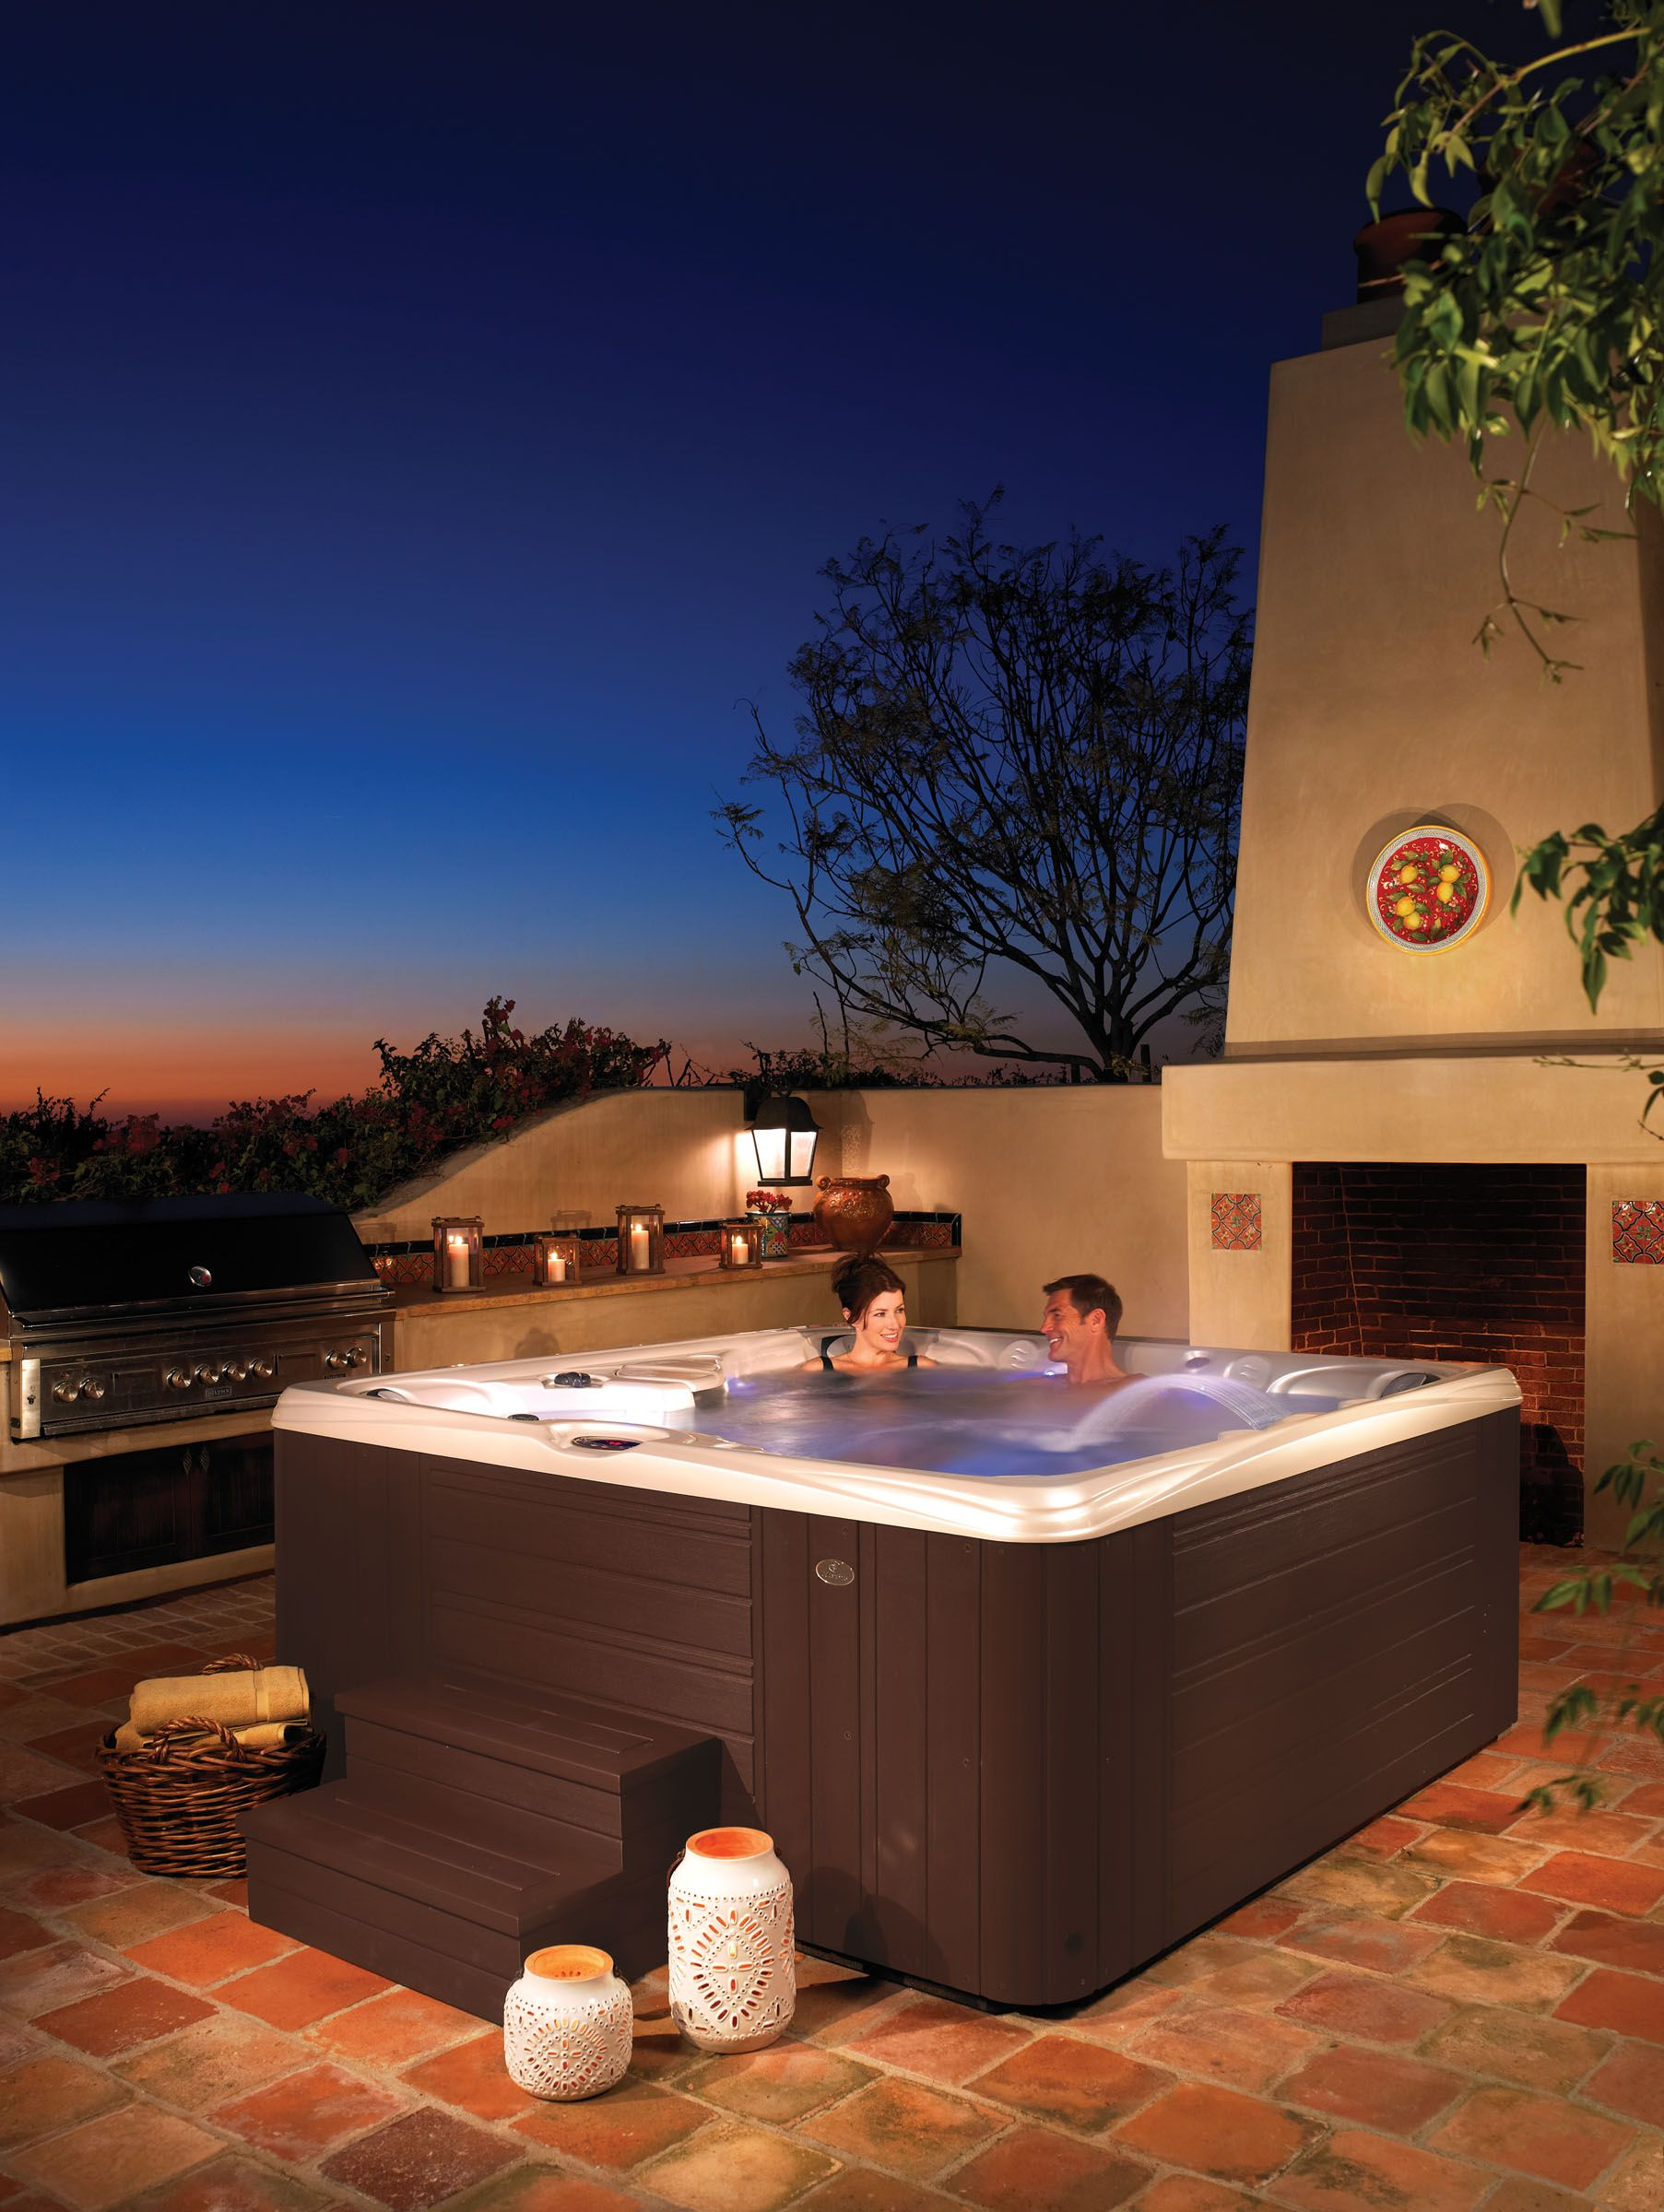 Enjoy A Beautiful Evening In Your Caldera Hottub Hot Tub Spa Hot Tubs Outdoor Patio Designs